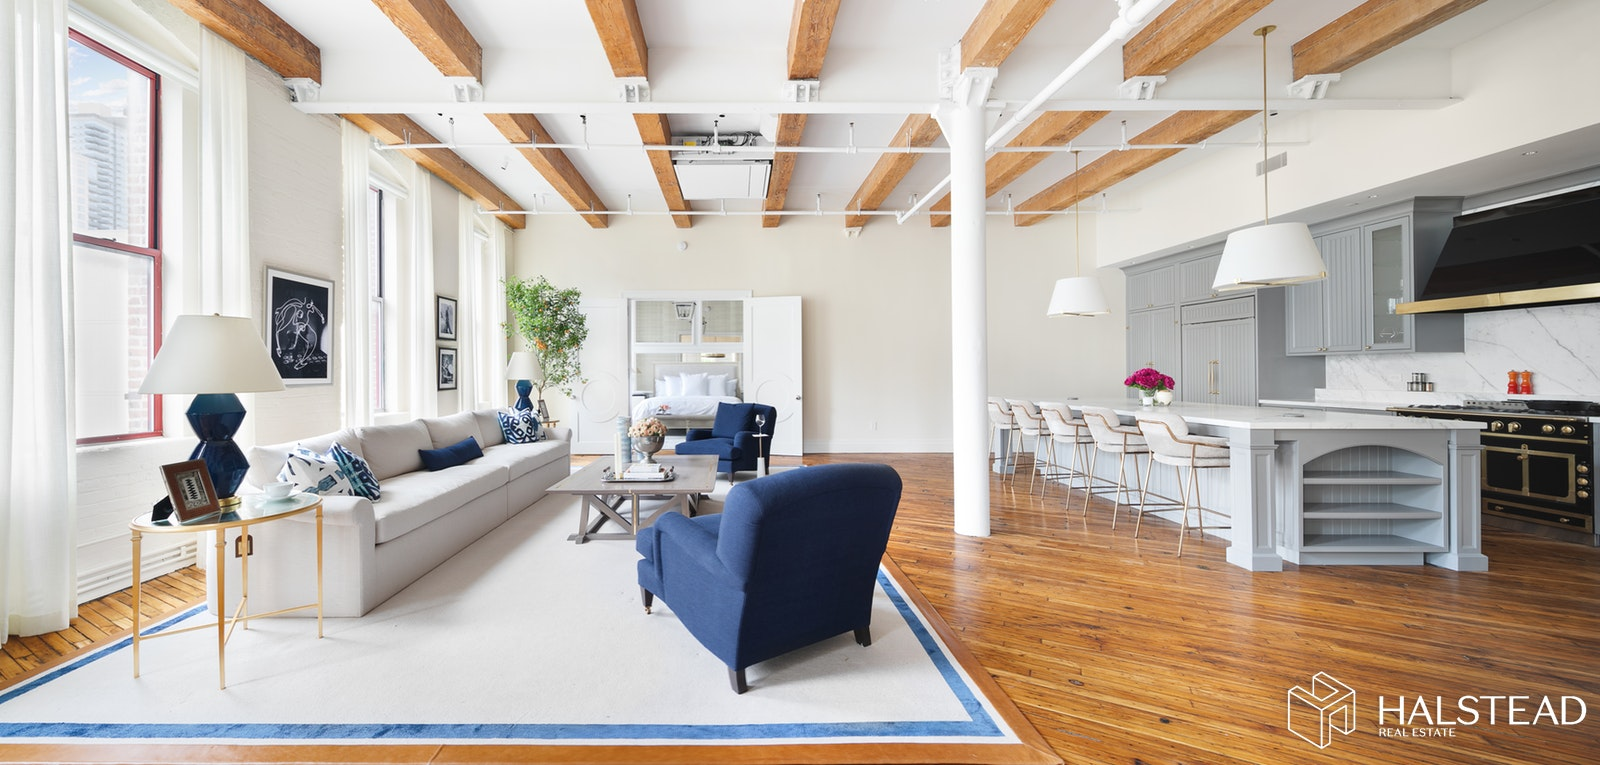 85 -101 North 3rd St 302/3, Williamsburg, Brooklyn, NY, 11211, $5,995,000, Property For Sale, Halstead Real Estate, Photo 1